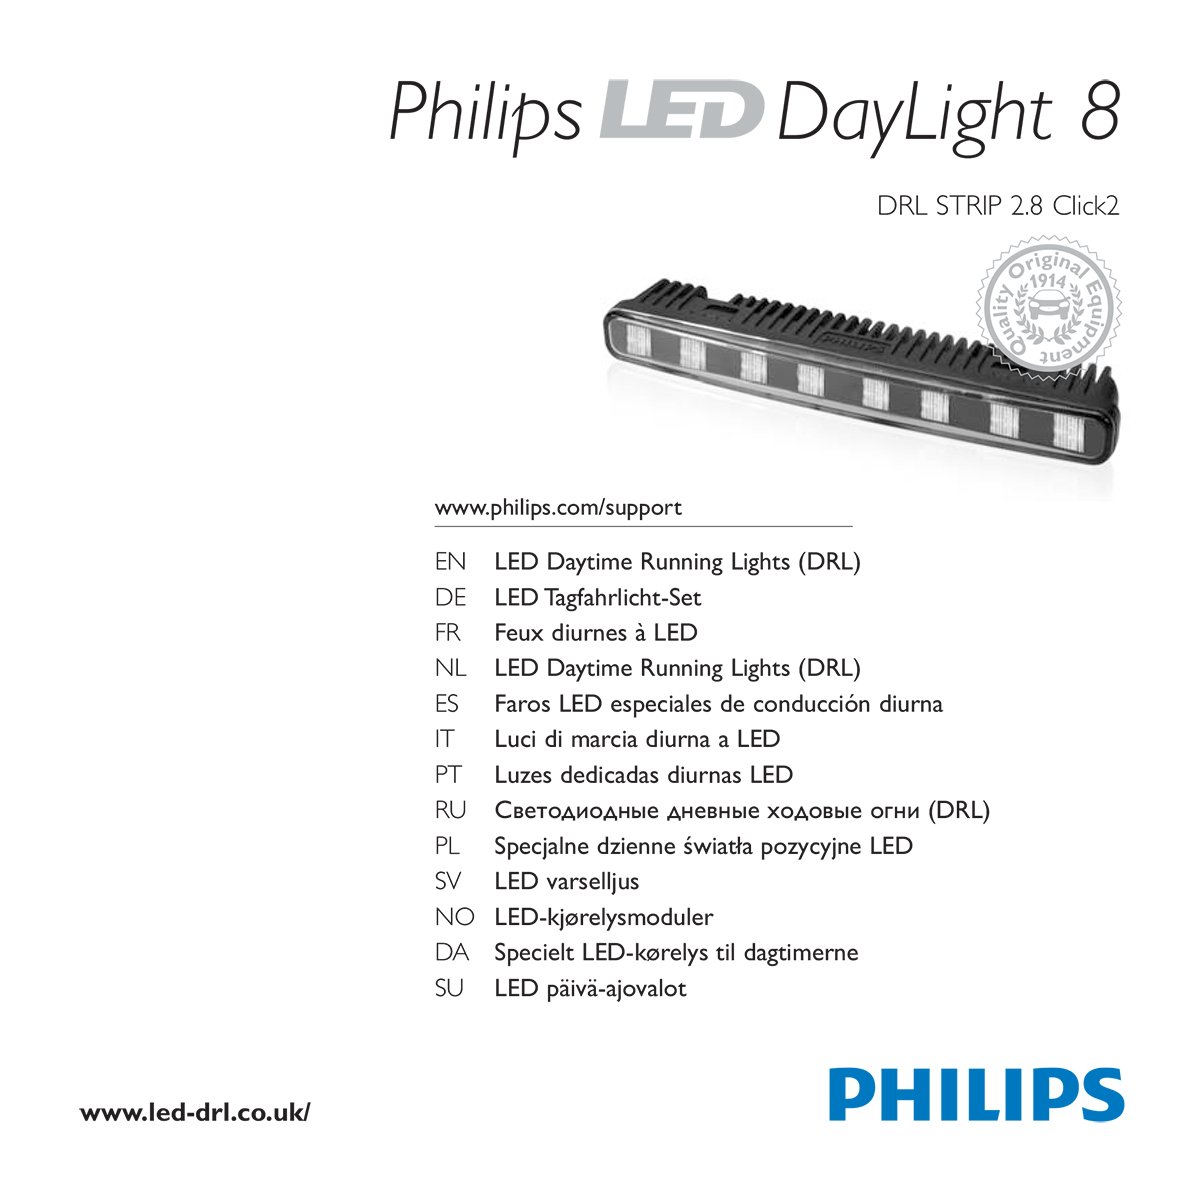 Philips LED DayLight 8 user guide - full pdf version